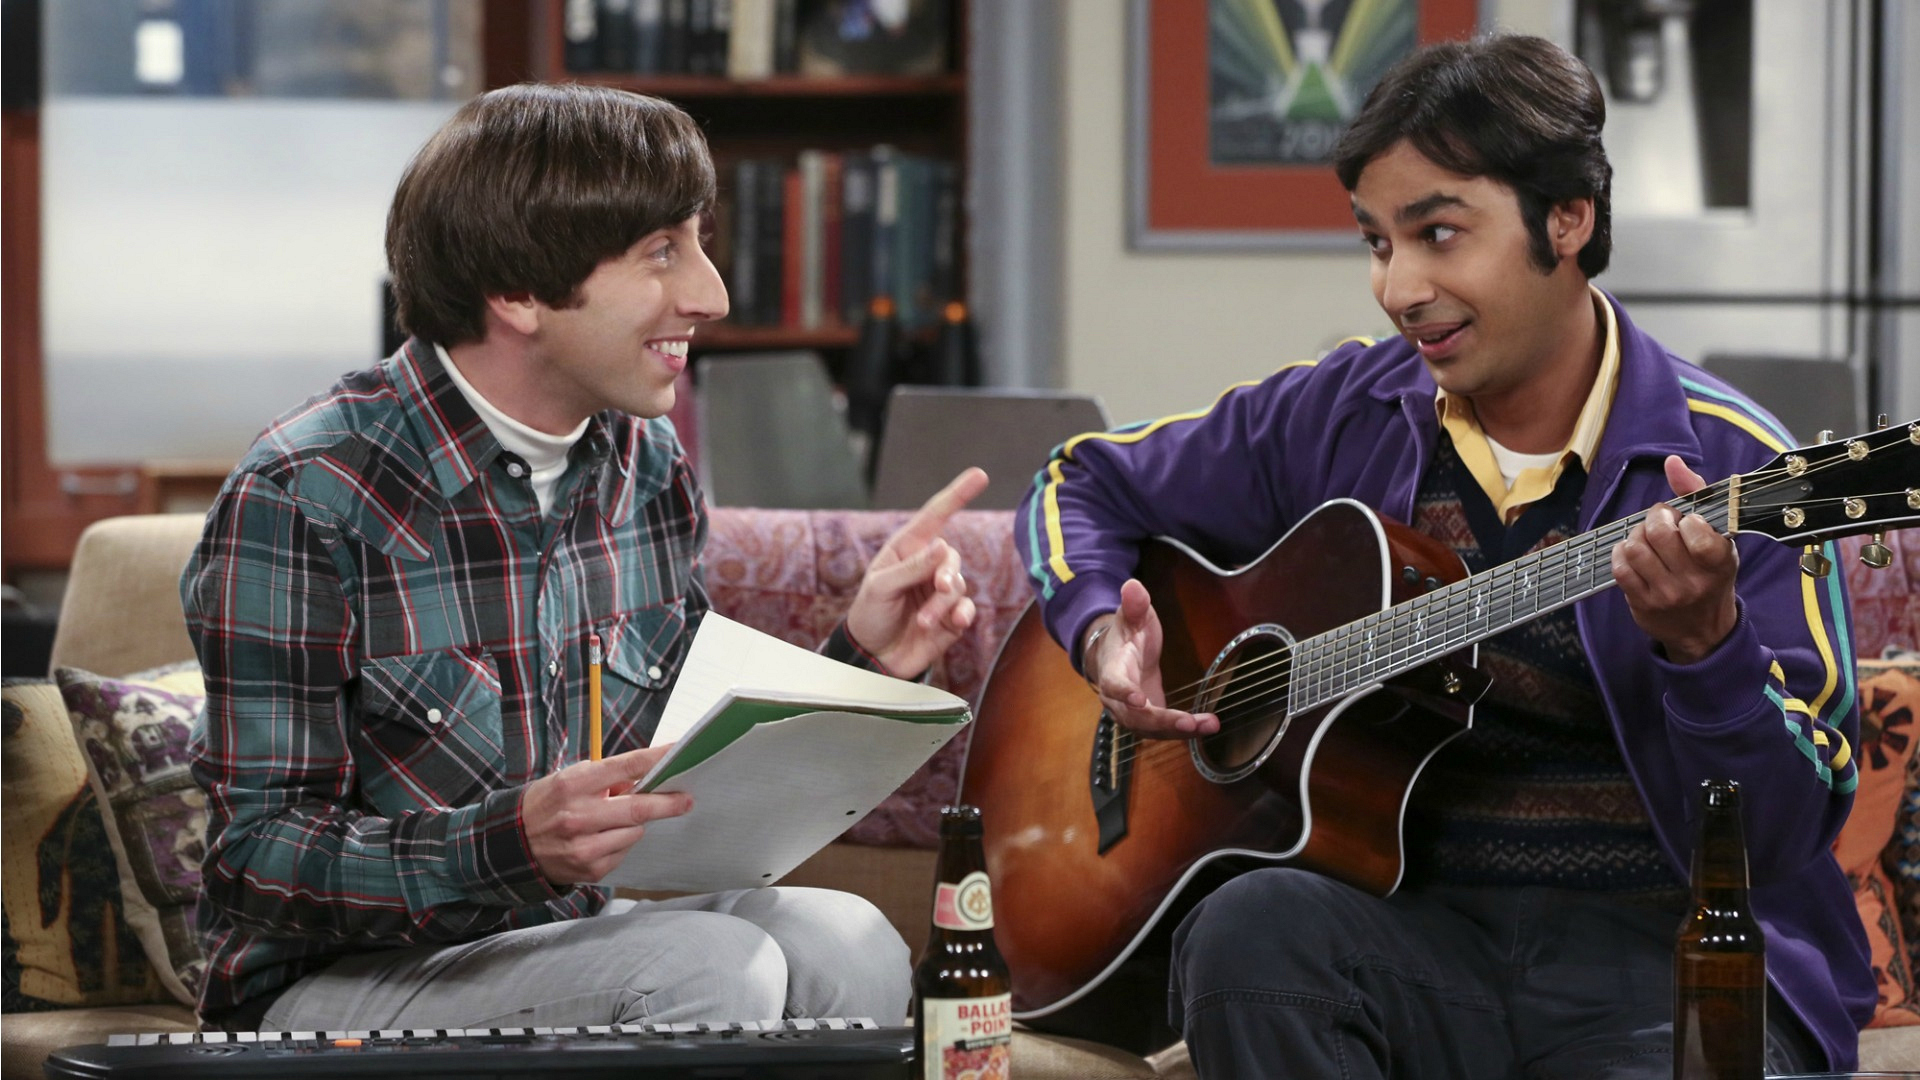 12. We laughed when Howard and Raj started a rock band